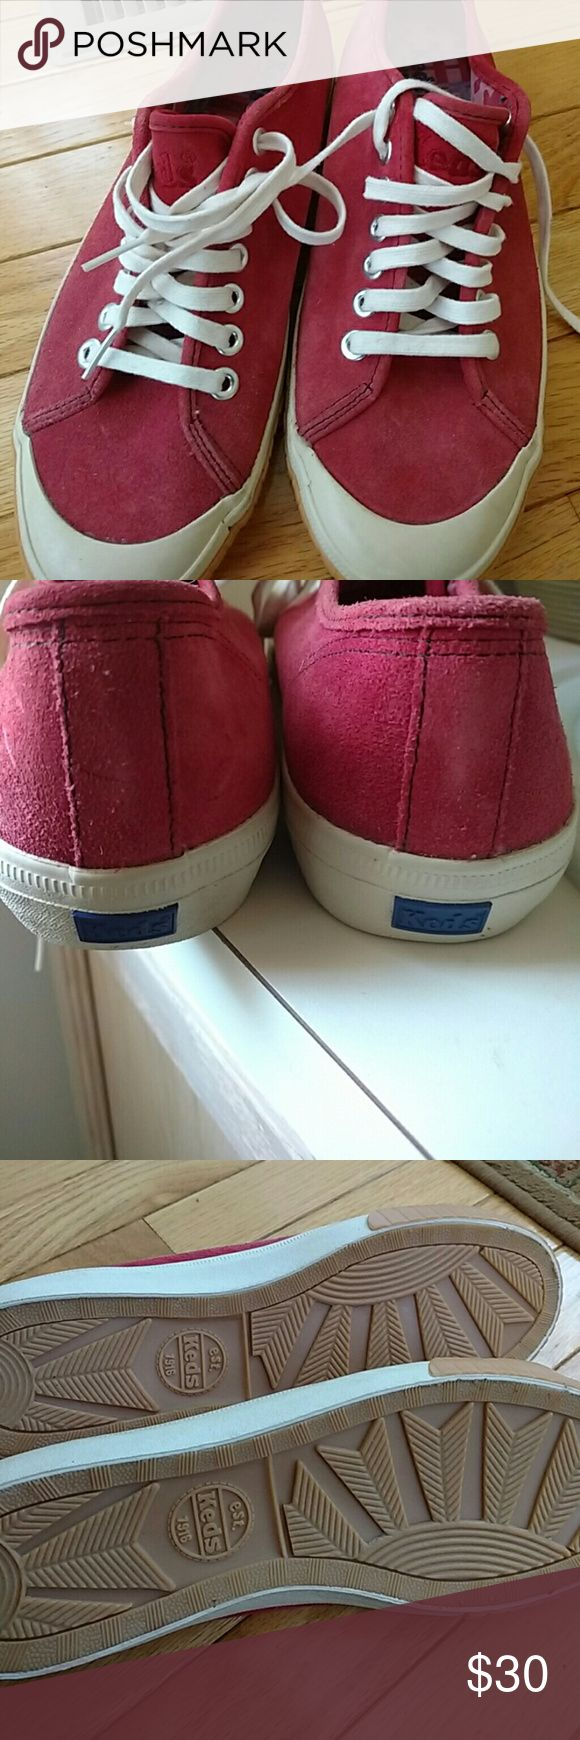 Vintage Keds Tennis Shoes/Women Red velvet texture. Keds Shoes Sneakers